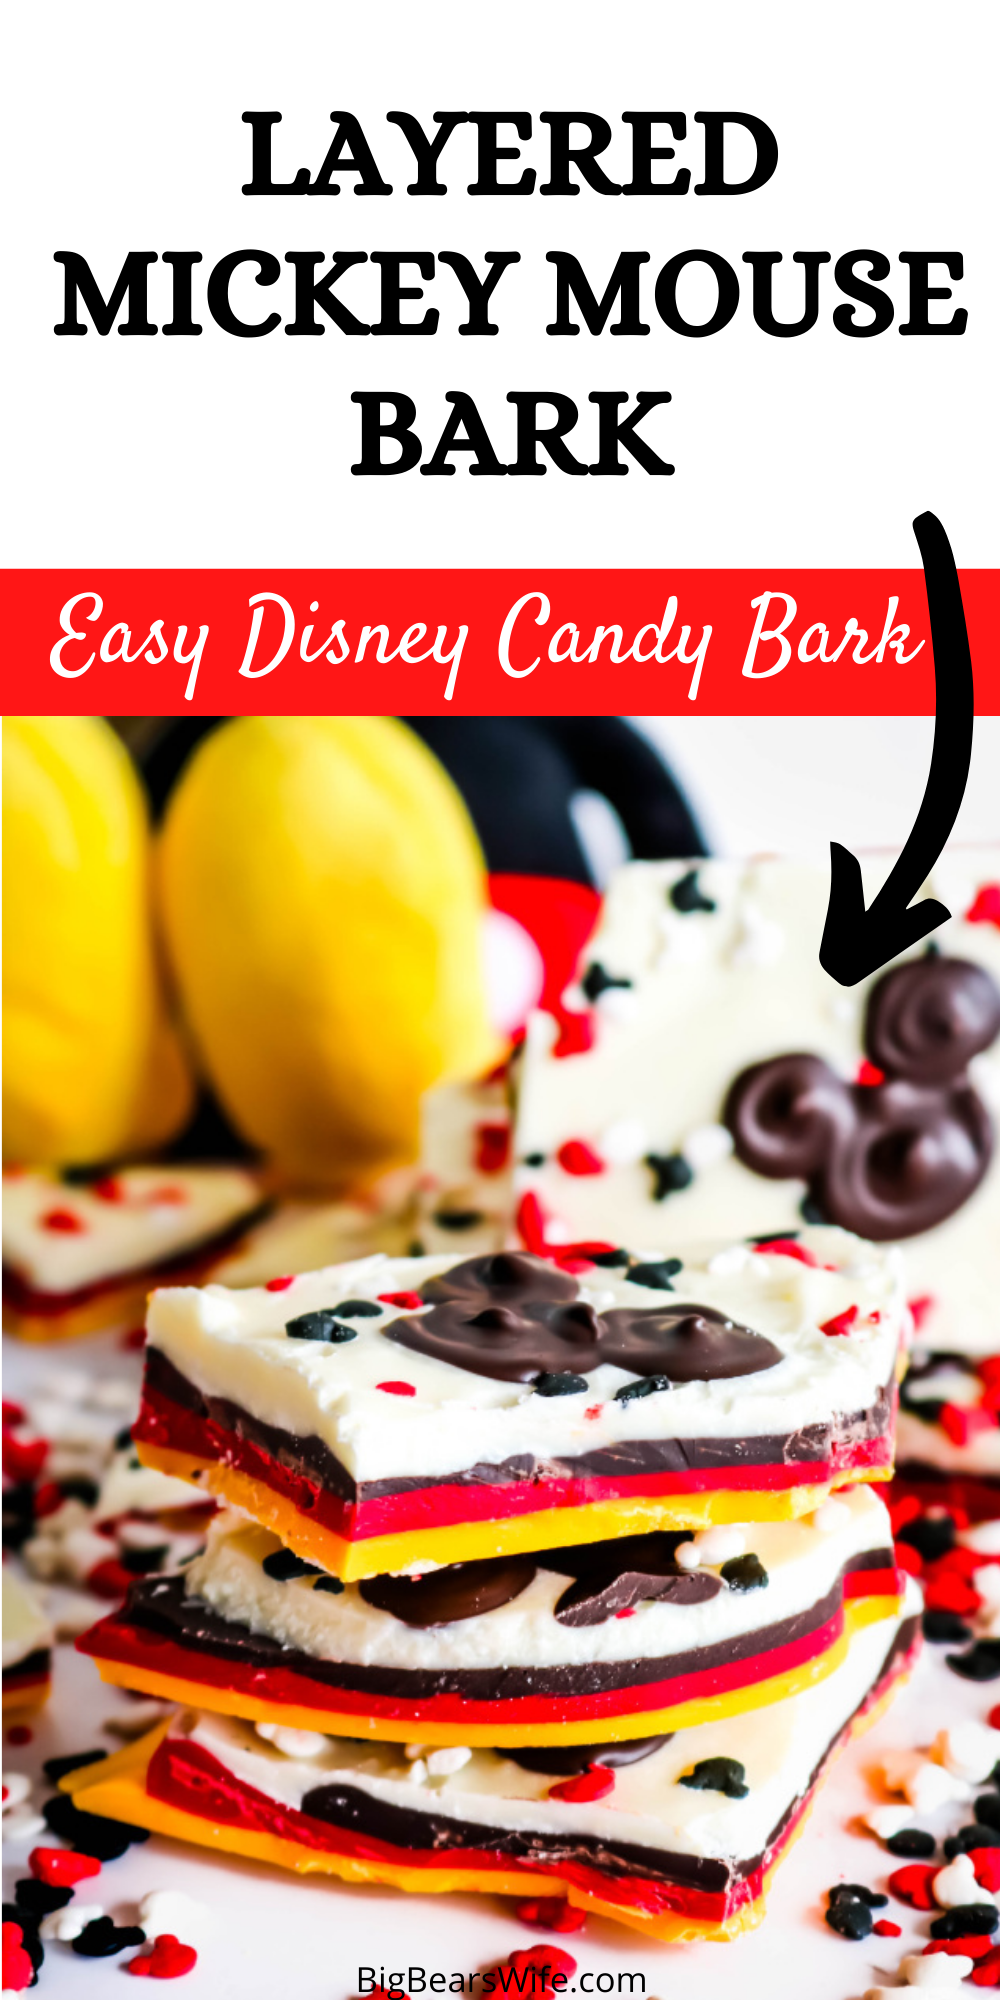 This Layered Mickey Mouse Bark is a fun Mickey Mouse inspired treat that shows off all of Mickey's signature colors! This Mickey bark is super easy to make and would be a perfect dessert or party favor for any Disney fan! via @bigbearswife